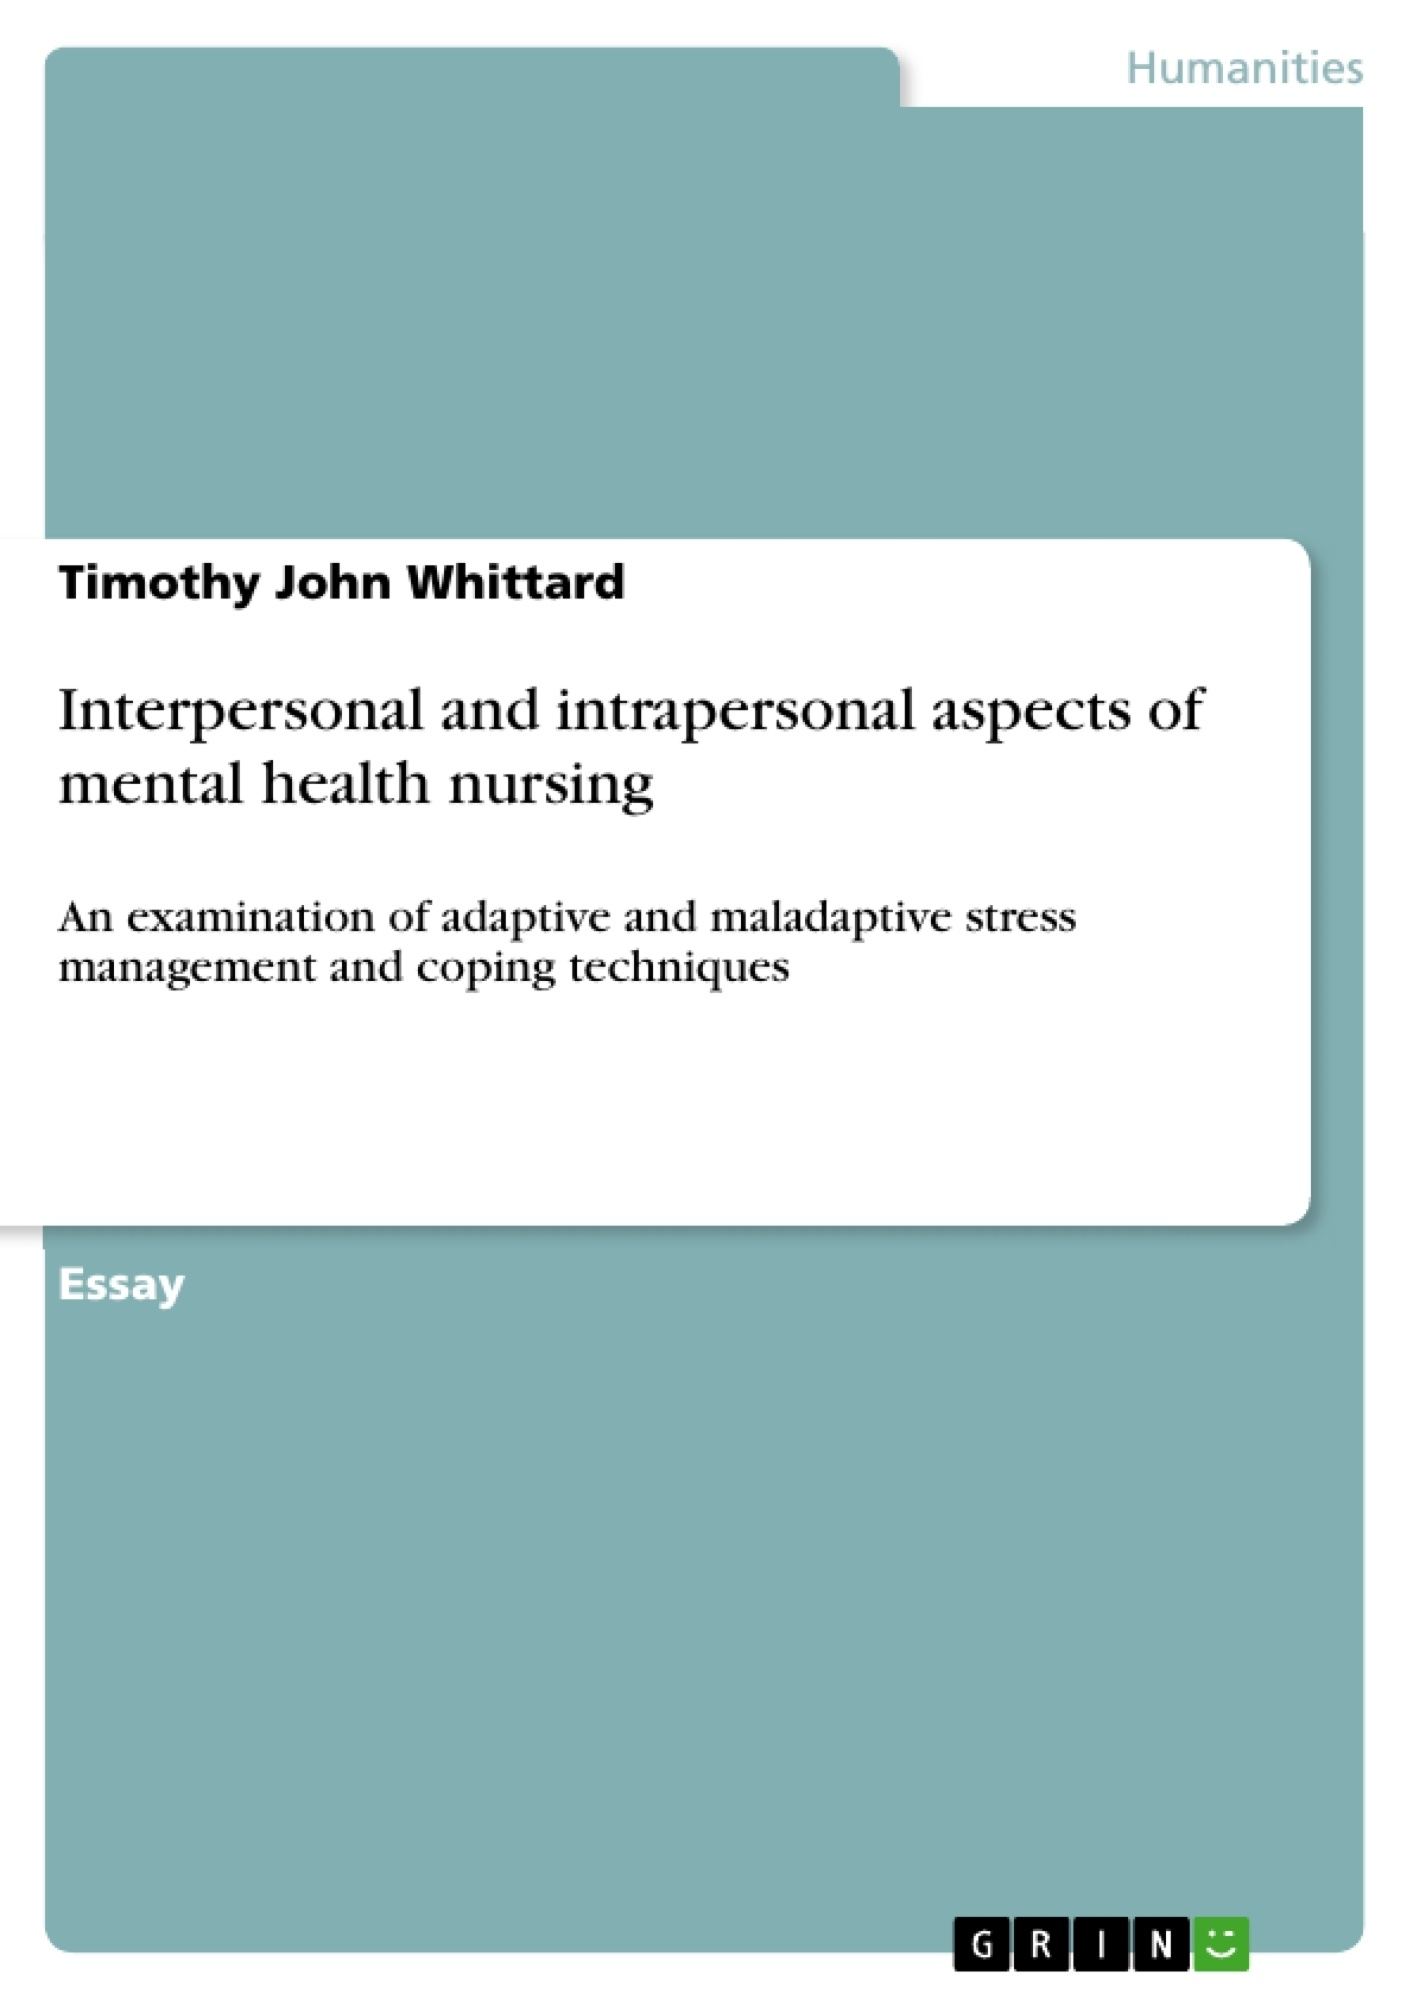 Title: Interpersonal and intrapersonal aspects of mental health nursing